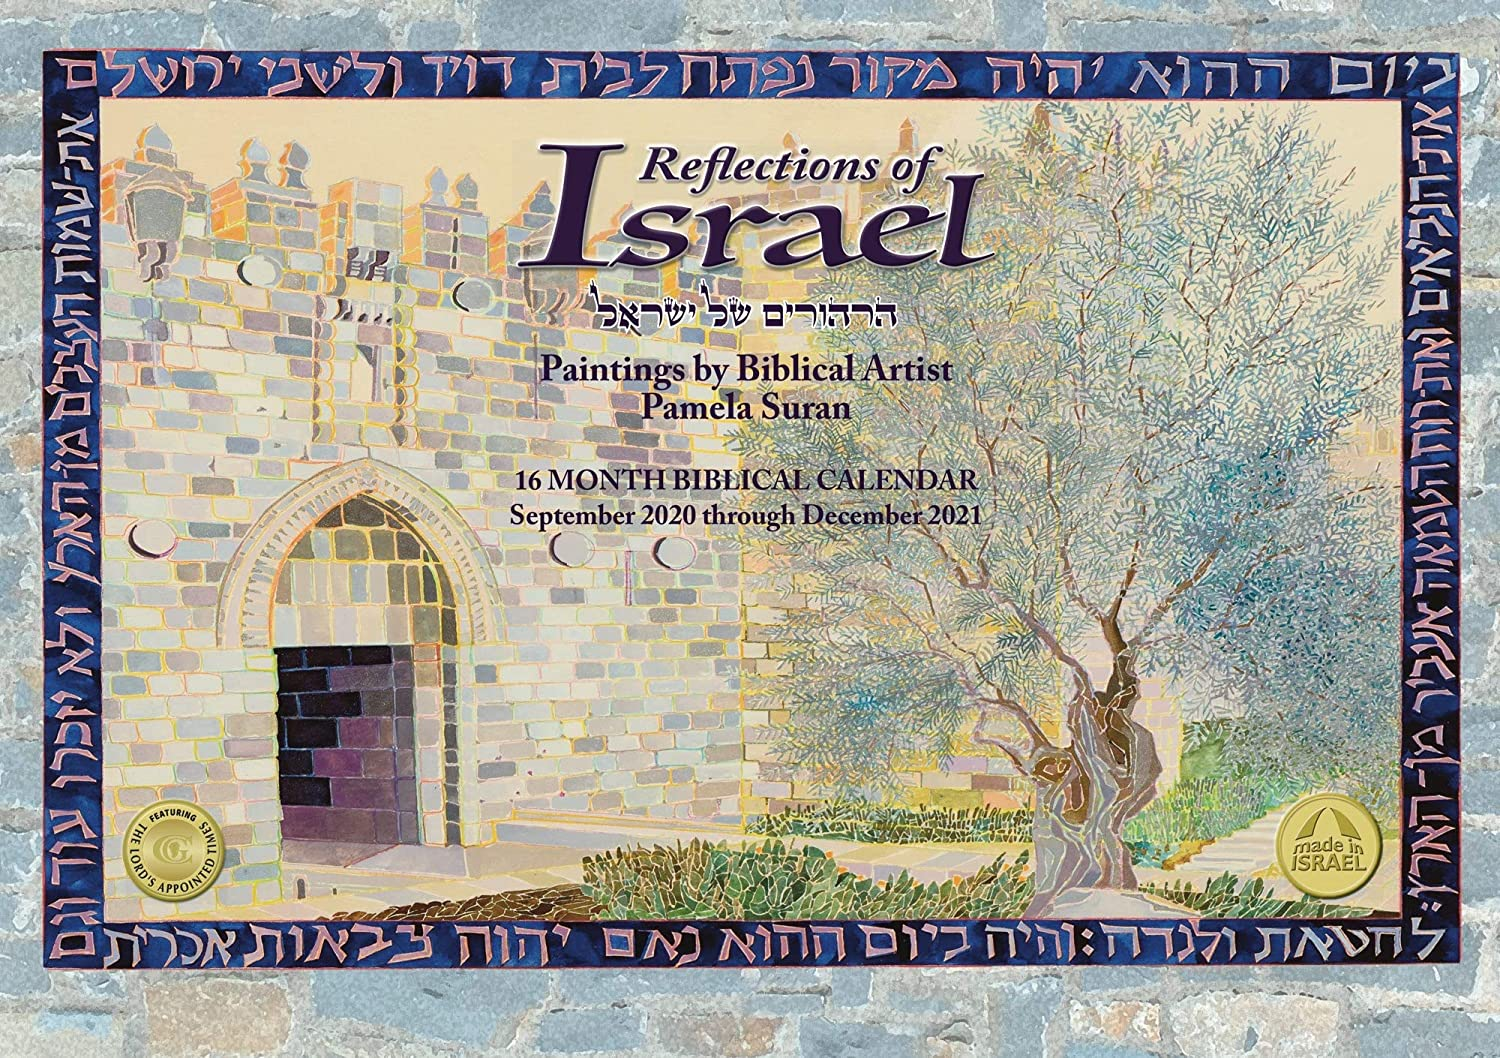 Amazon.com: 2020 2021 Reflections of Israel Art Calendar Featuring